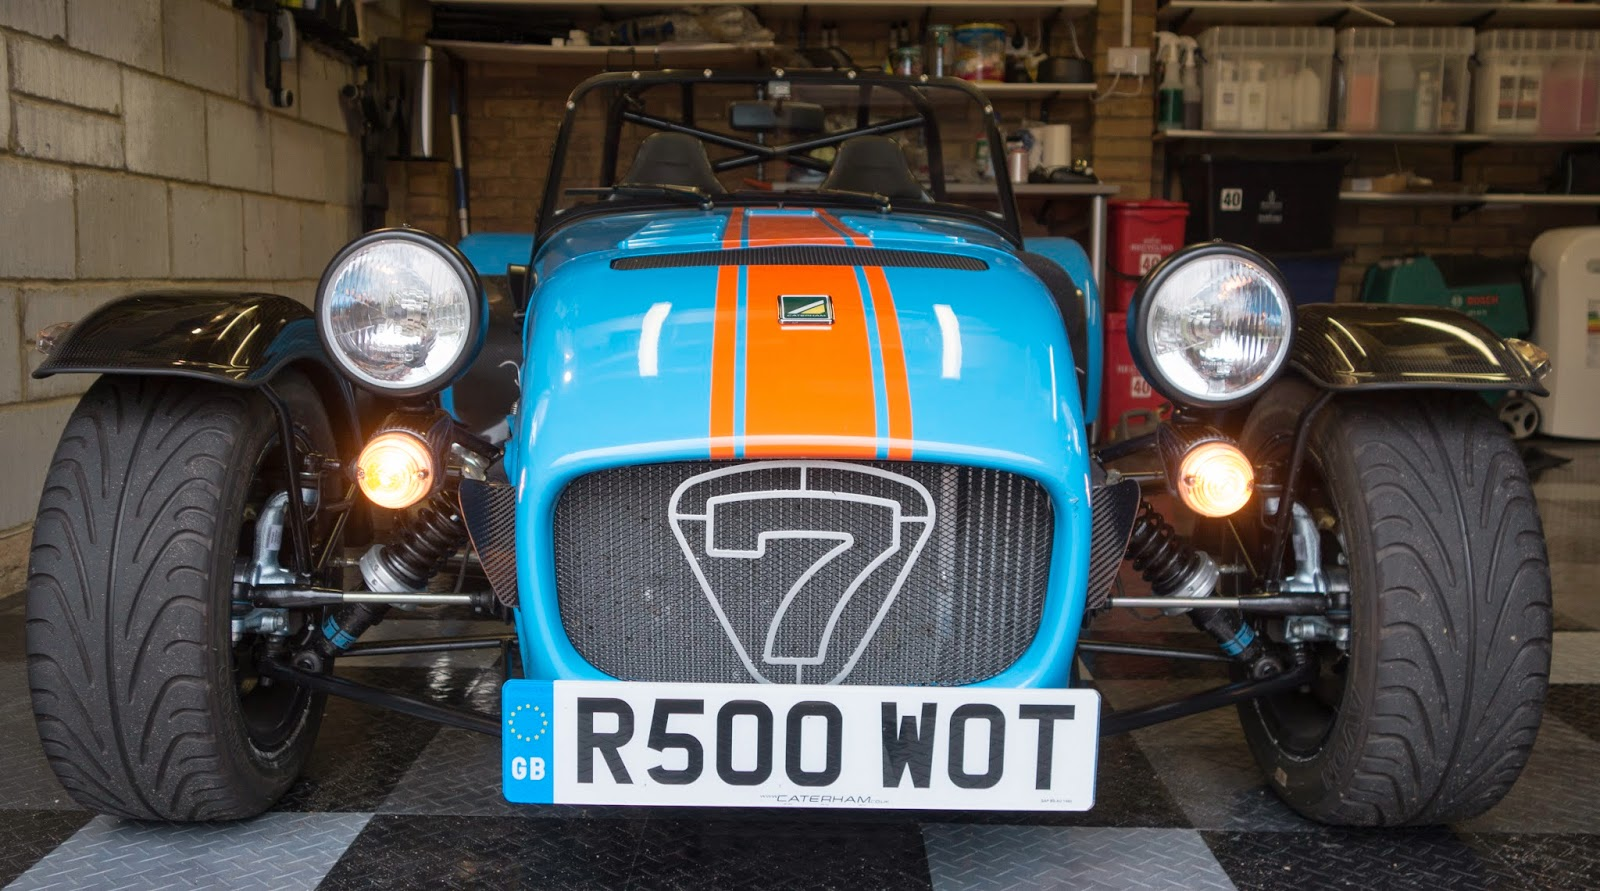 Caterham R500 Front with clear indicator kit fitted and illuminated.